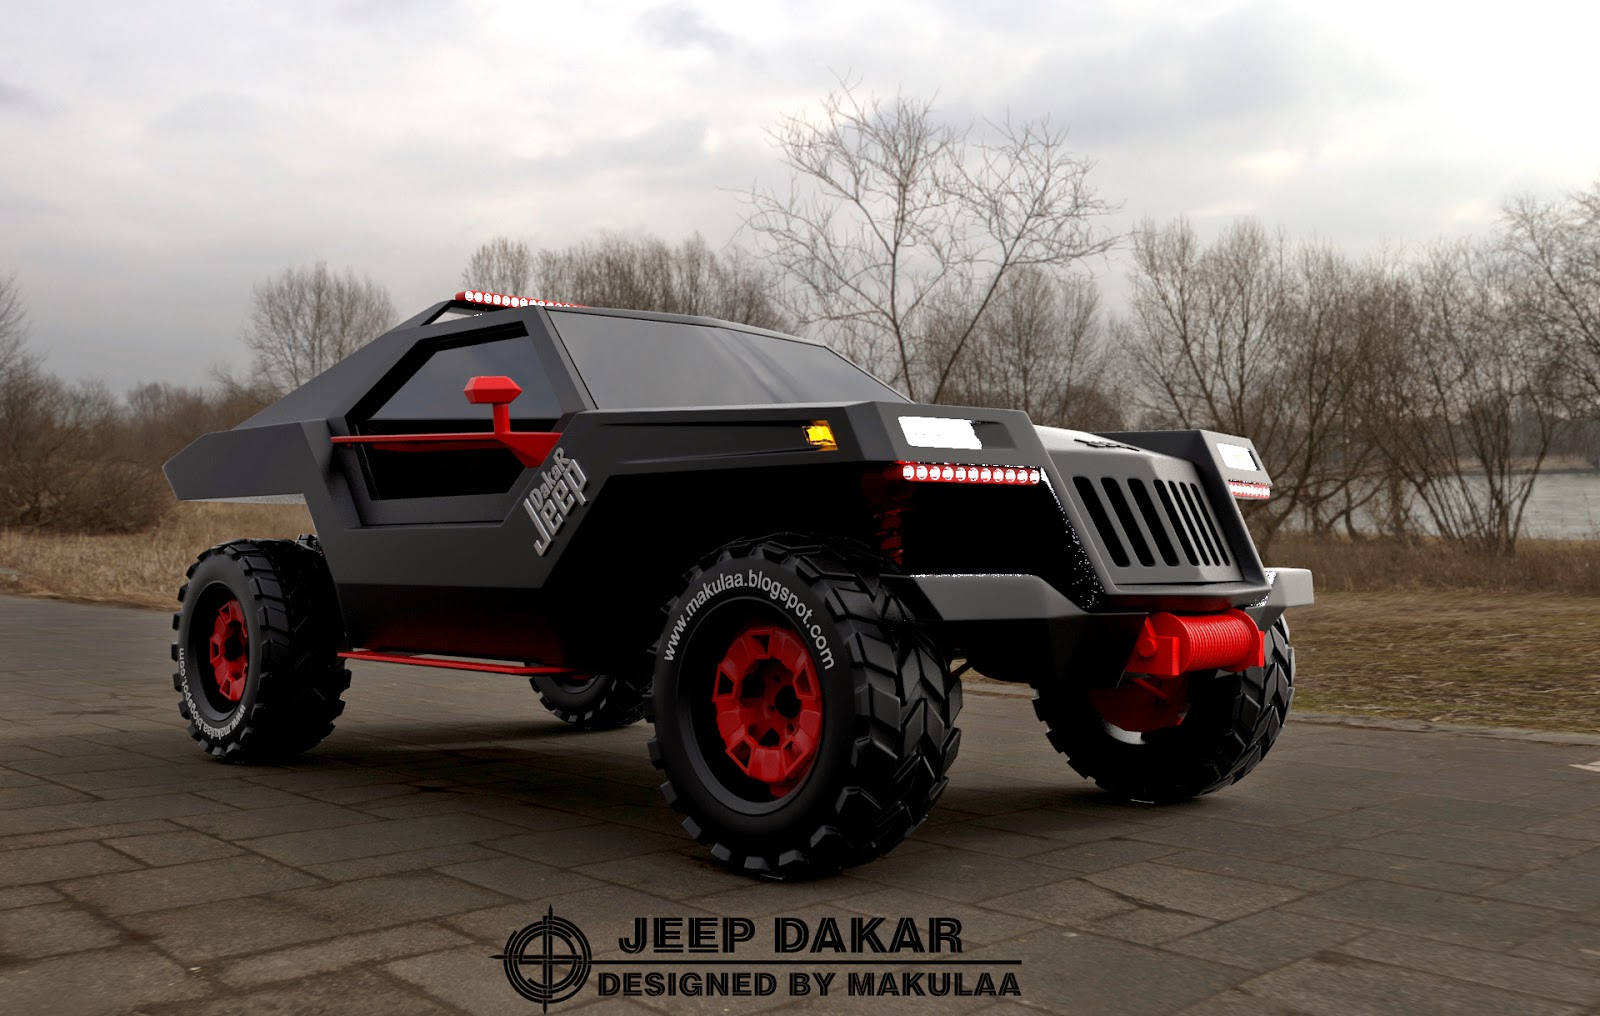 Jeep dakar photo - 3